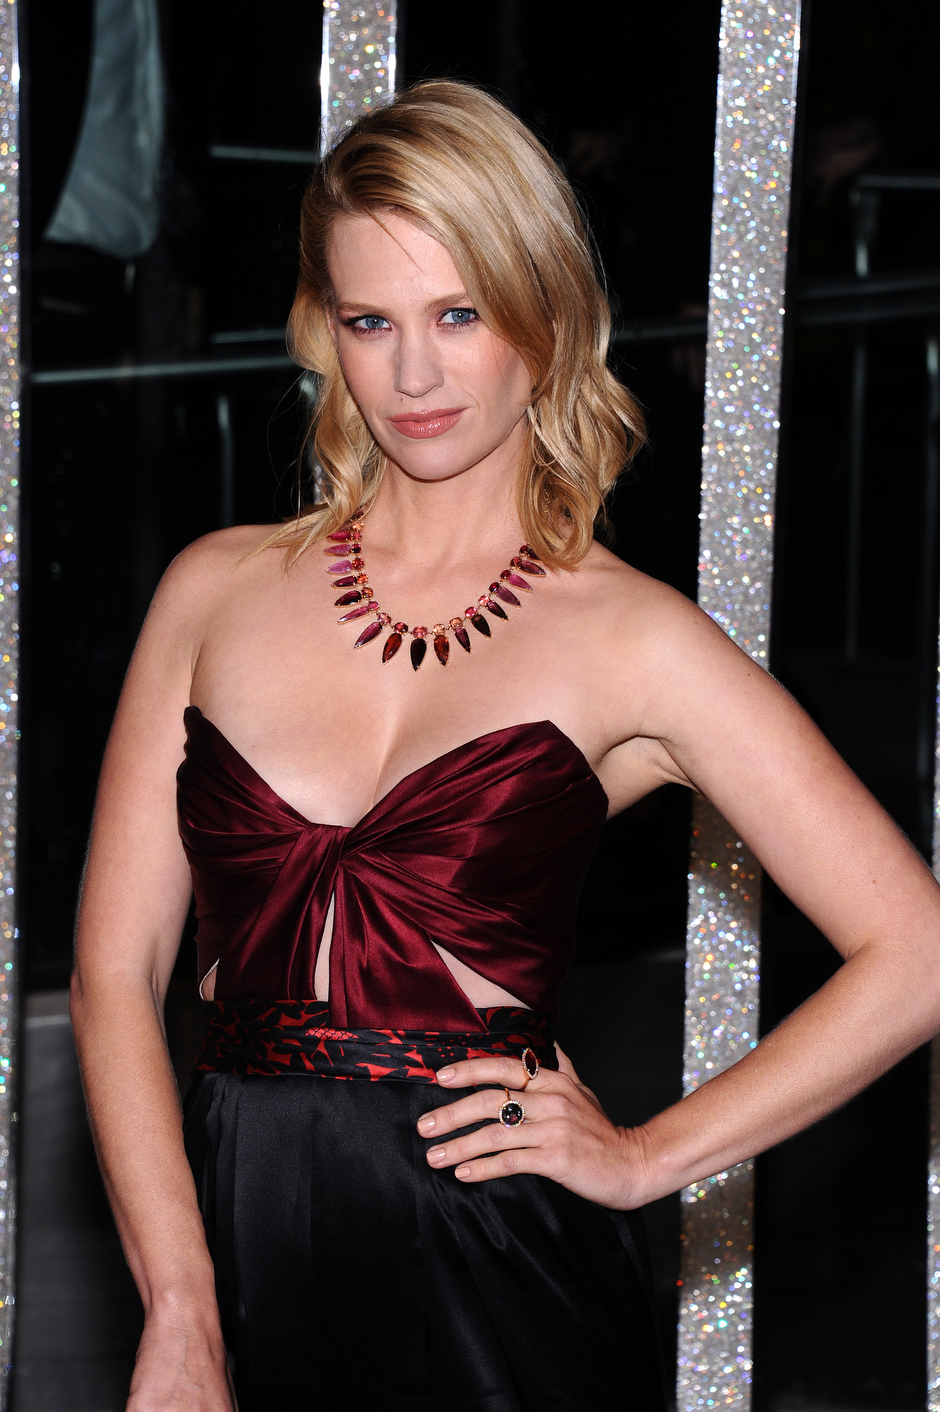 . January Jones attends the 2015 CFDA Fashion Awards at Alice Tully Hall on Monday, June 1, 2015, in New York. (Photo by Charles Sykes/Invision/AP)